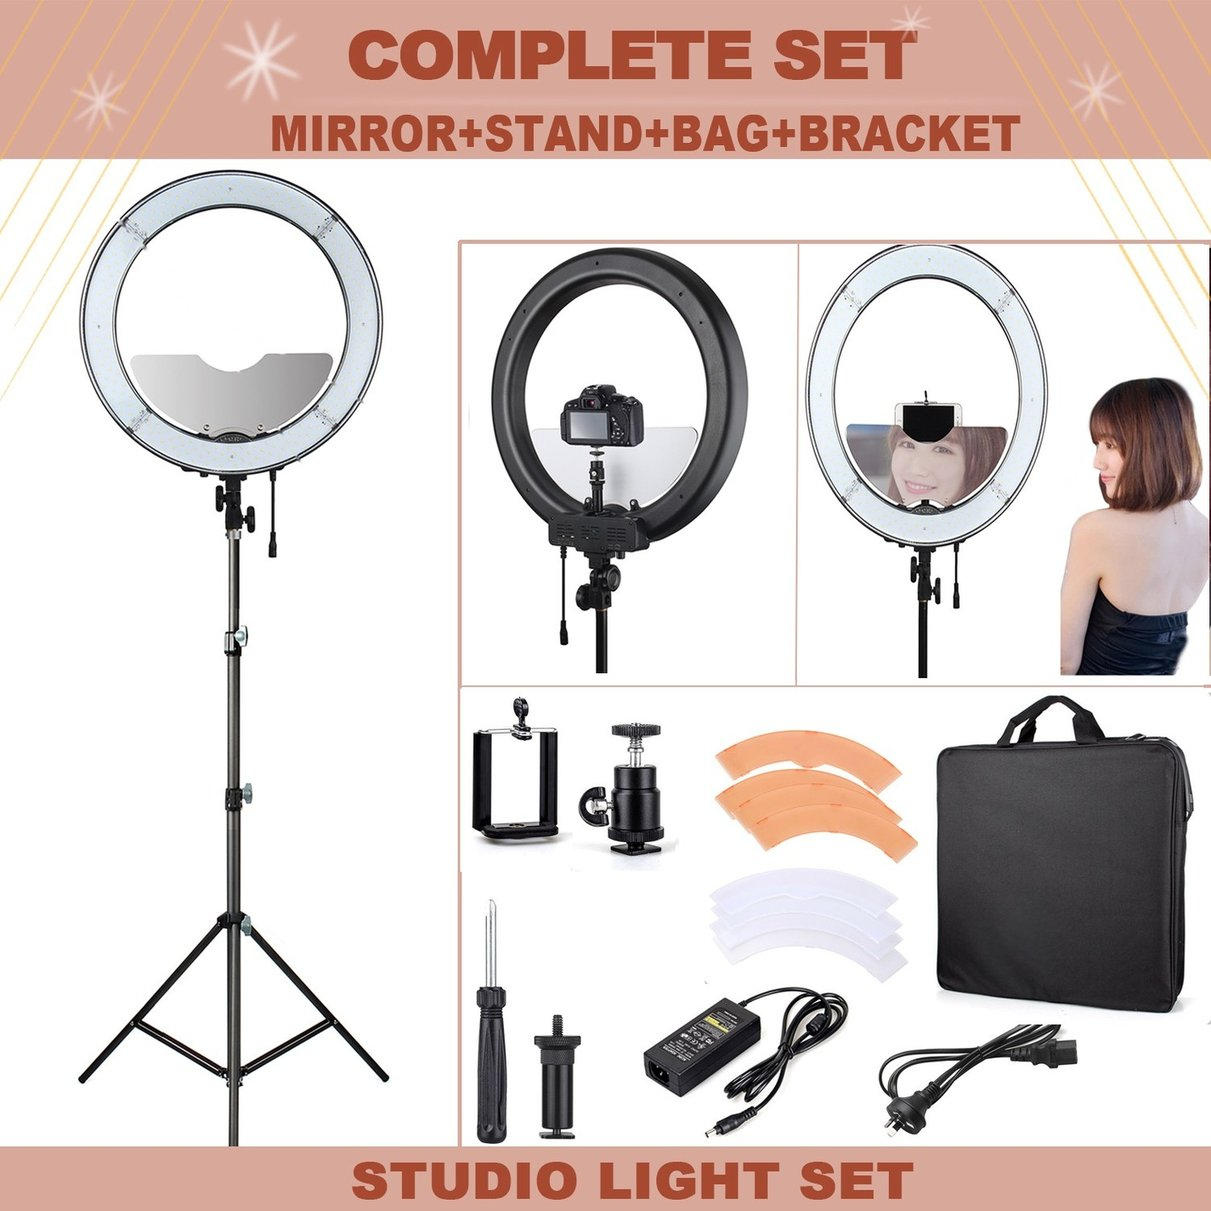 "Stand Up Light: ES240 18"" 5500K Dimmable LED Adjustable Ring Light With"